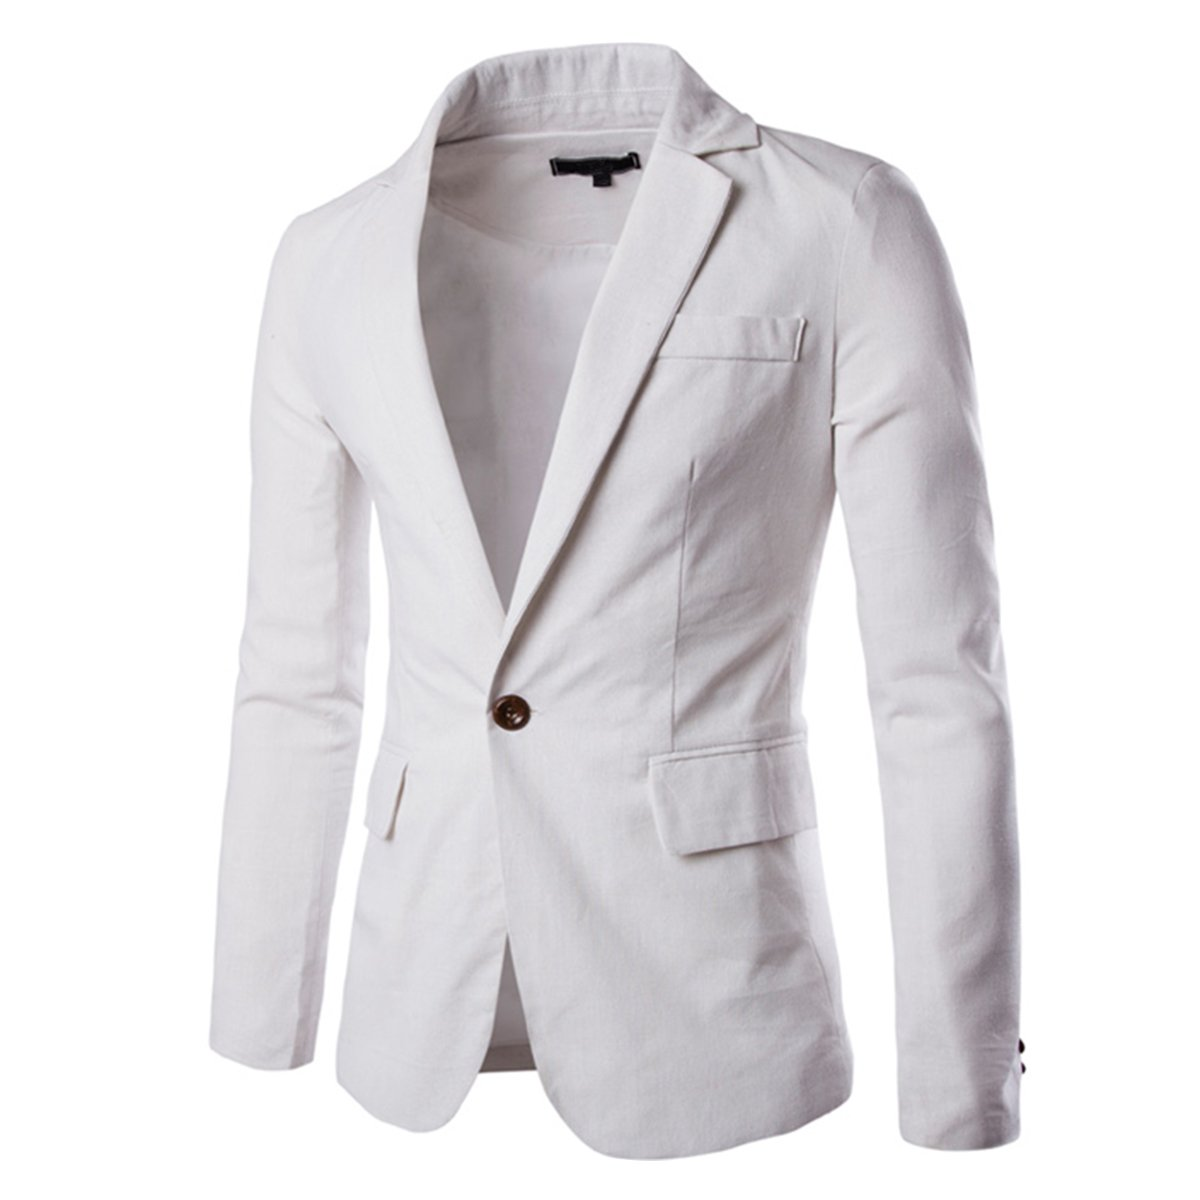 Pishon Men's Linen Blazer Lightweight Casual Solid One Button Slim Fit Sport Coat, White, Tag Size XXXL=US Size L